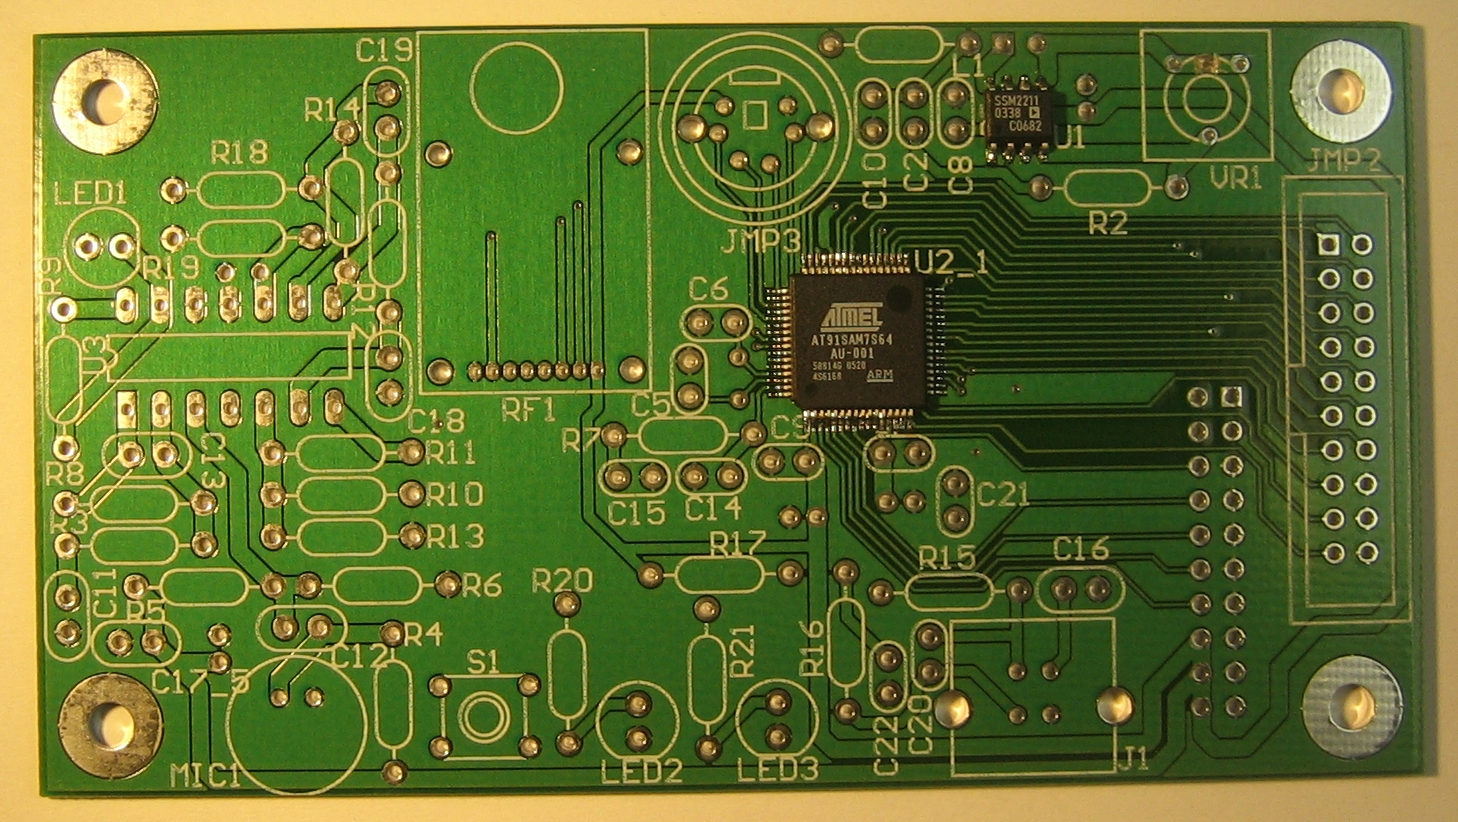 Step By Guide To Building A Plug Low Voltage Board What Solder Use For Circuit Boards Fine Tipped Soldering Iron And Microscope This Ic The